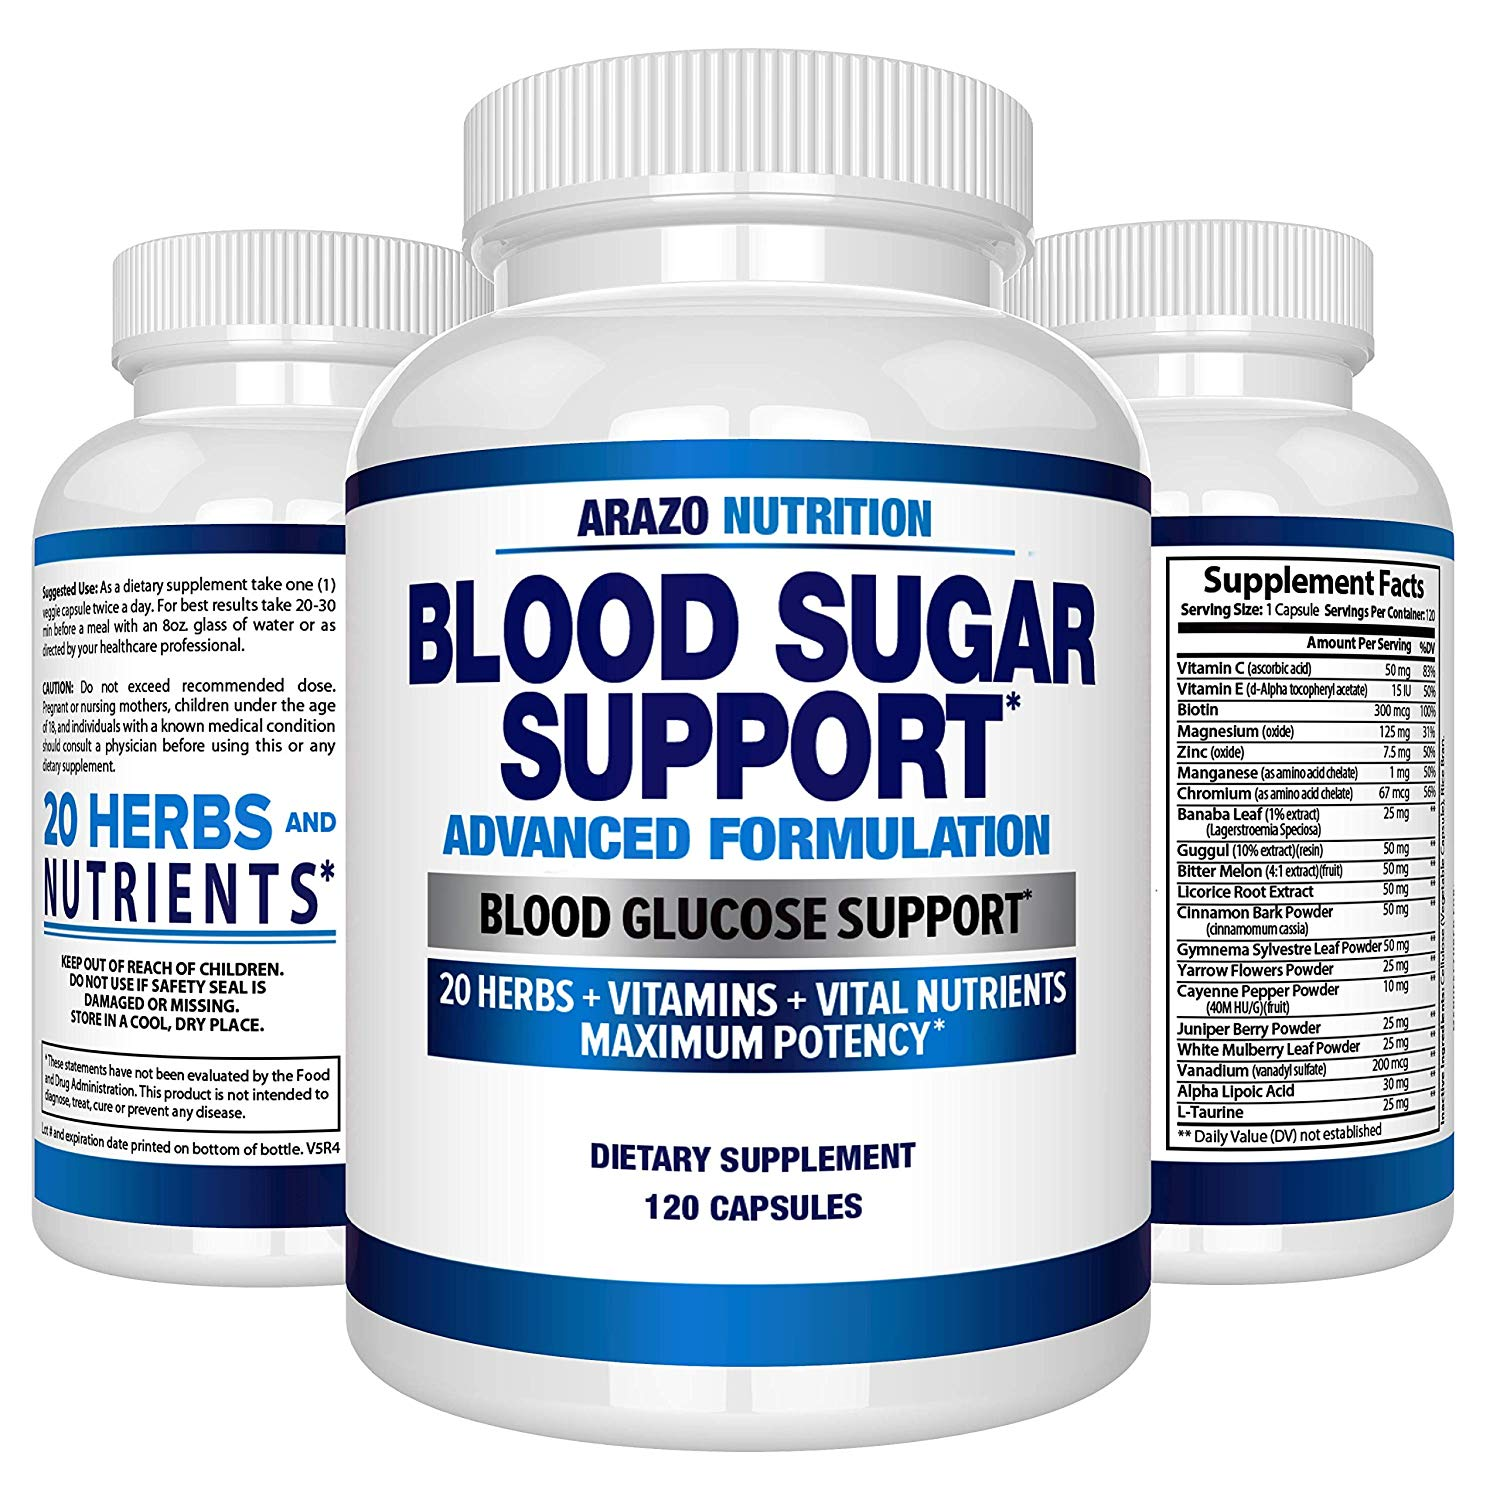 Blood Sugar Support Supplement - 20 HERBS & Multivitamin for Blood Sugar Control by Arazo Nutrition